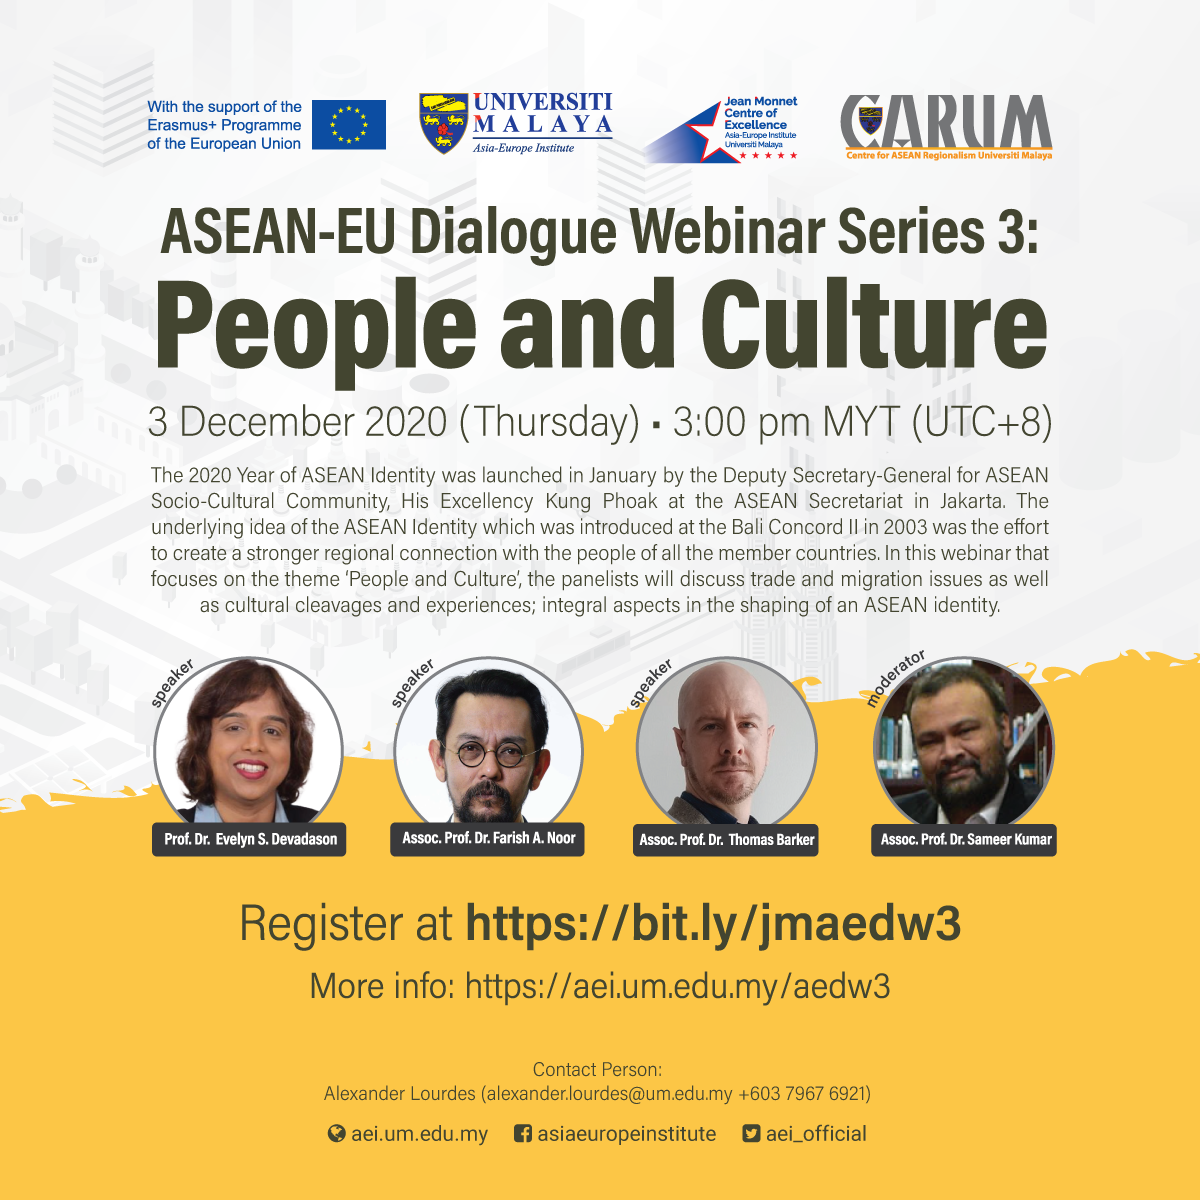 ASEAN-EU DIALOGUE WEBINAR SERIES 3: People and Culture